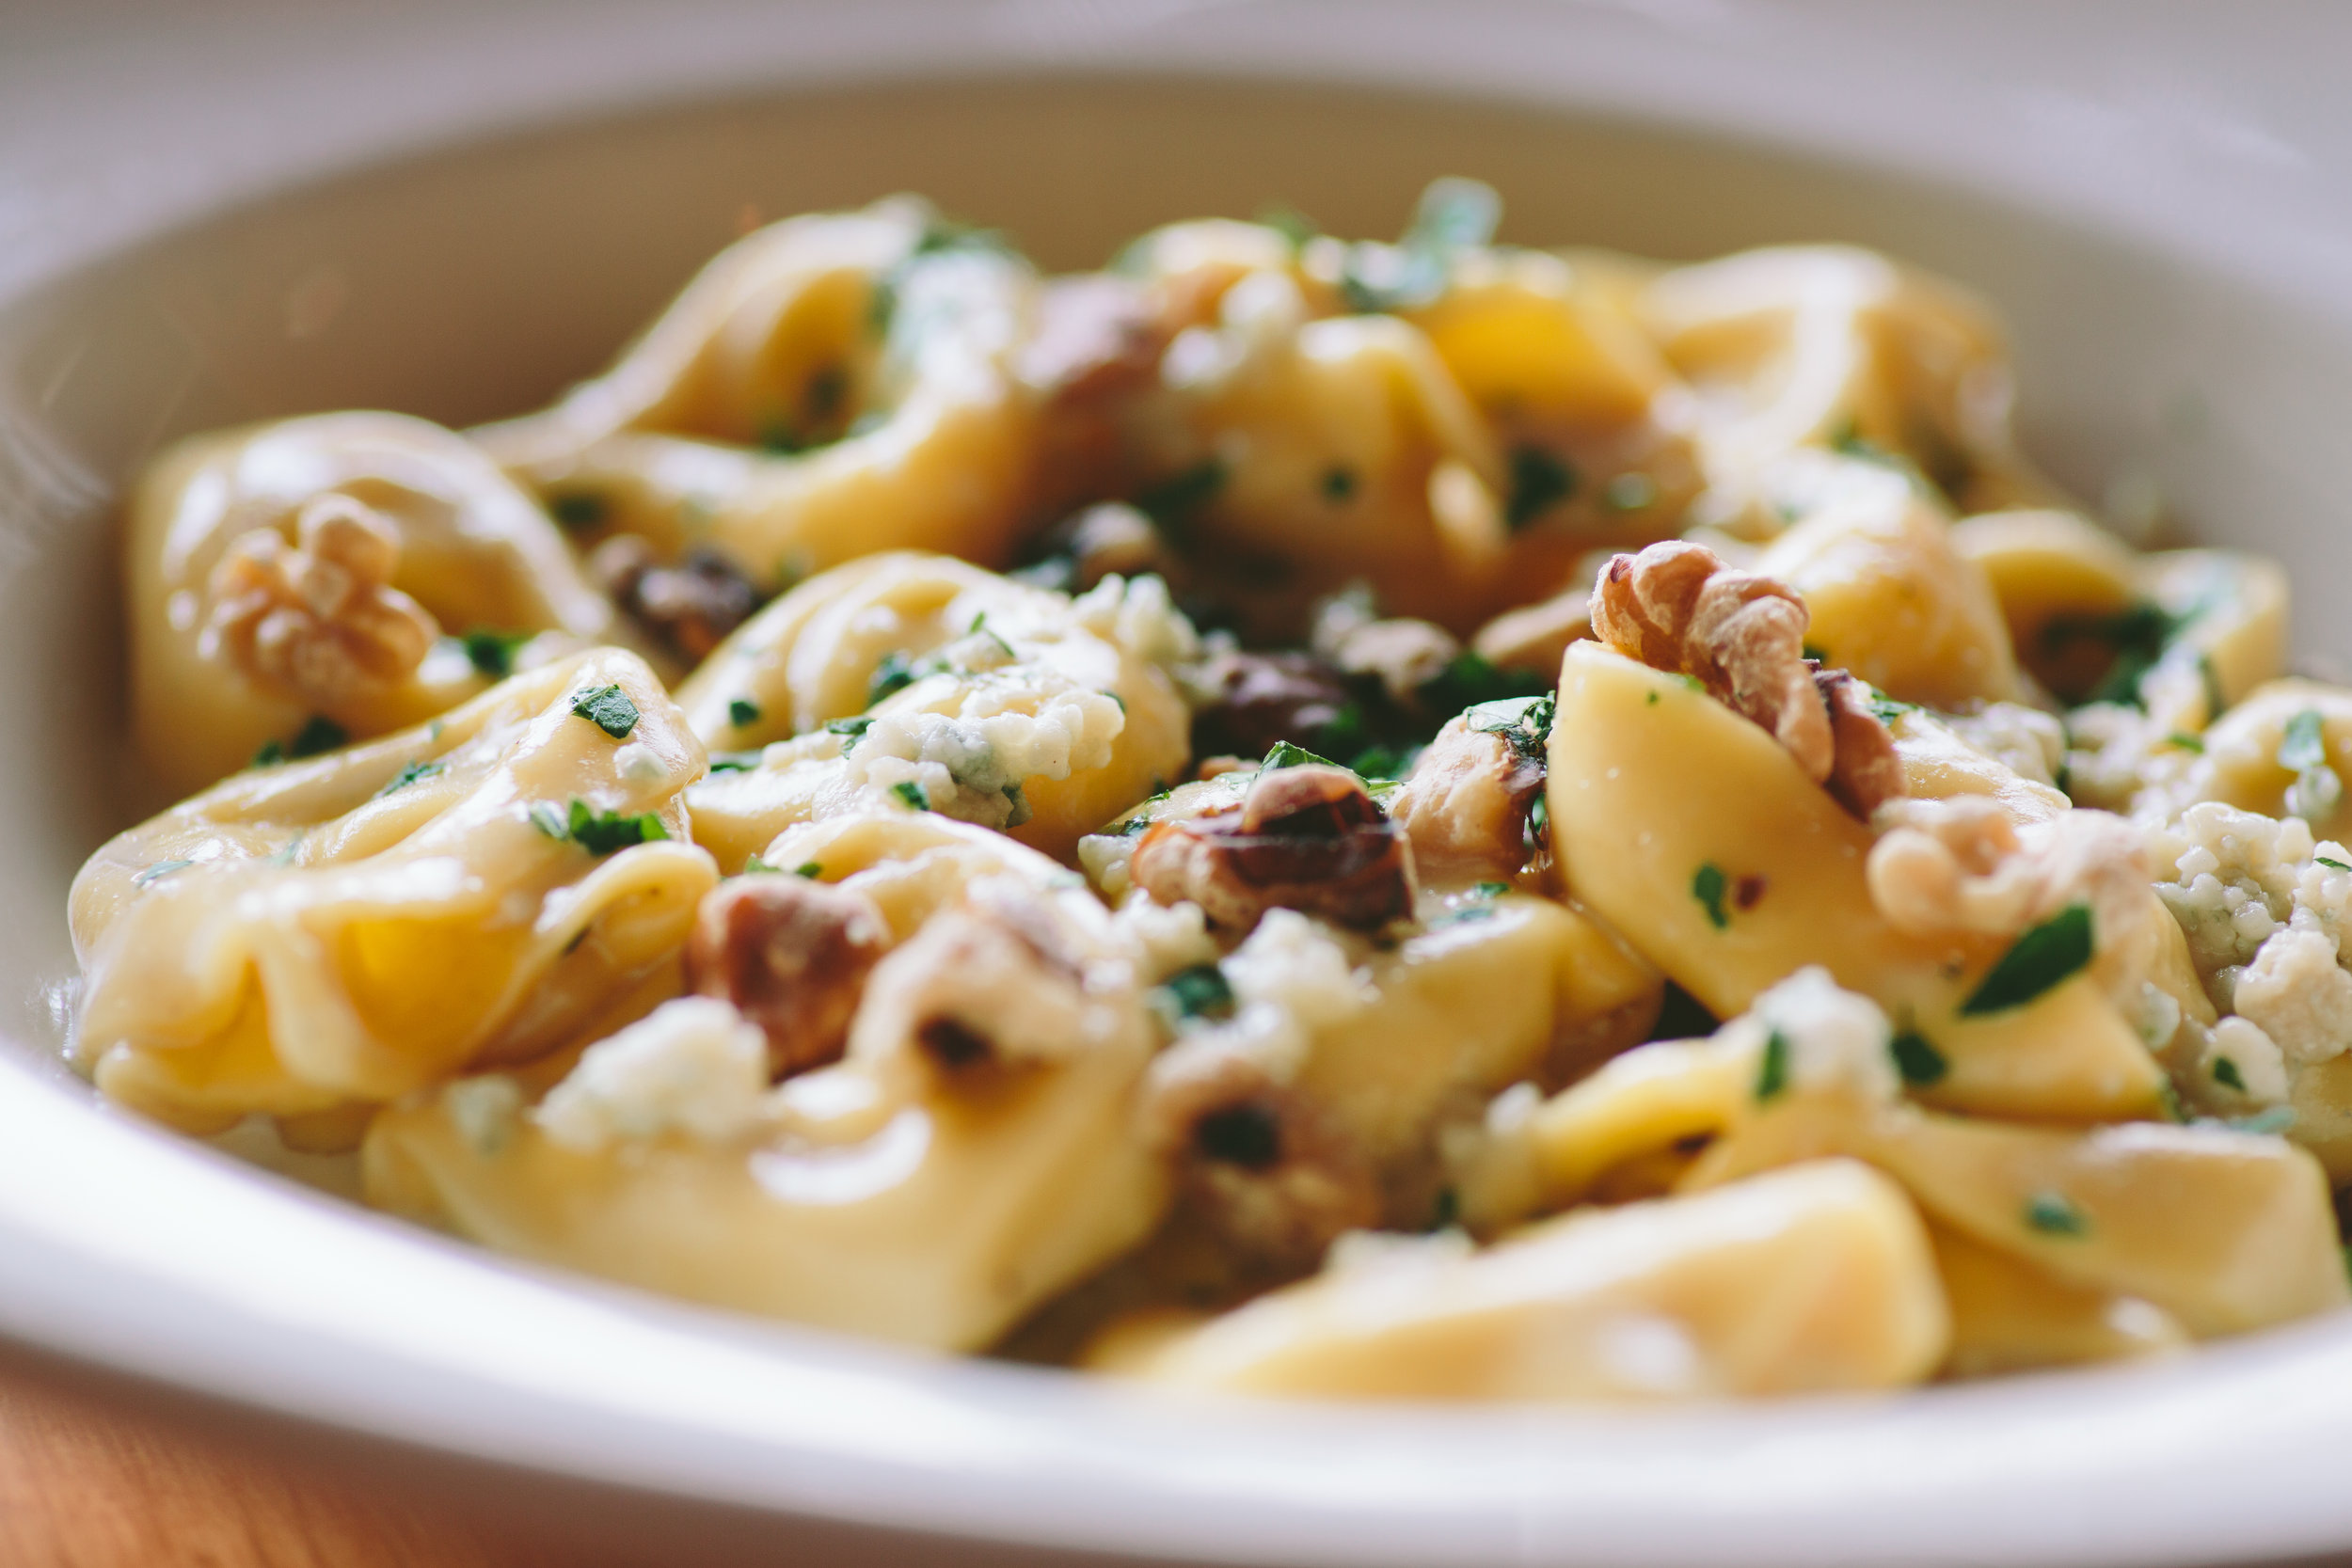 Tortellini Pic for website.jpg